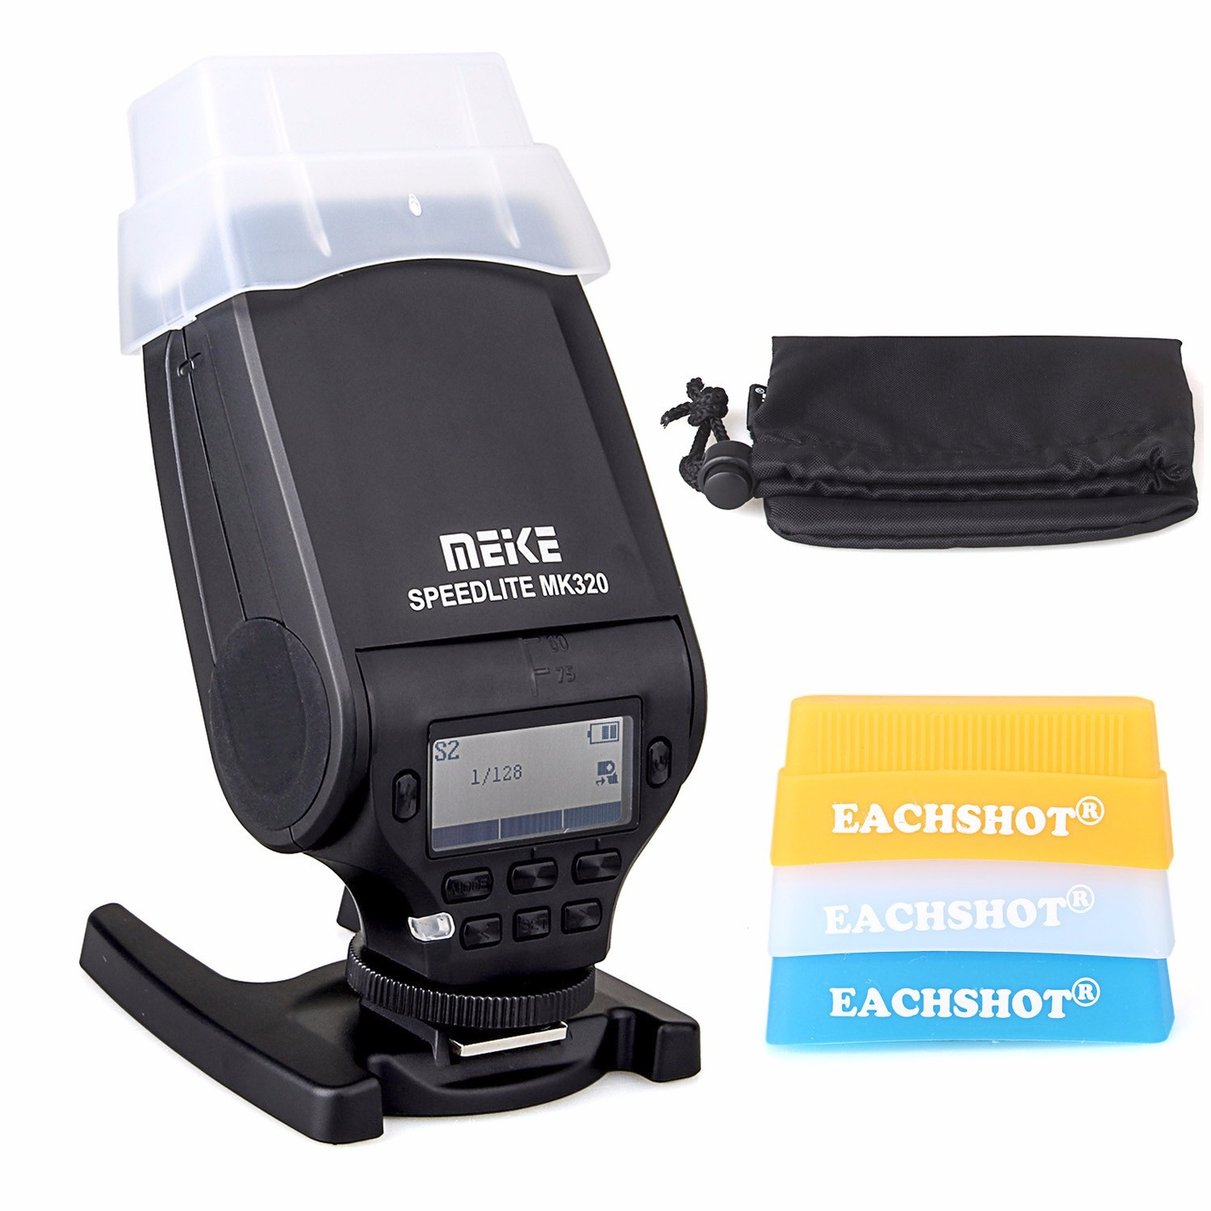 MEIKE MK-320 TTL Master HSS flash Speedlite for Canon EOS M M2 100D 5D II III 6D 7D 60D 70D 600D 7D mark II 700D 1100D T3i T2i new lp e6 2650mah 7 2v digital replacement camera battery for canon eos 5d mark ii 2 iii 3 6d 7d 60d 60da 70d 80d dslr eos 5ds